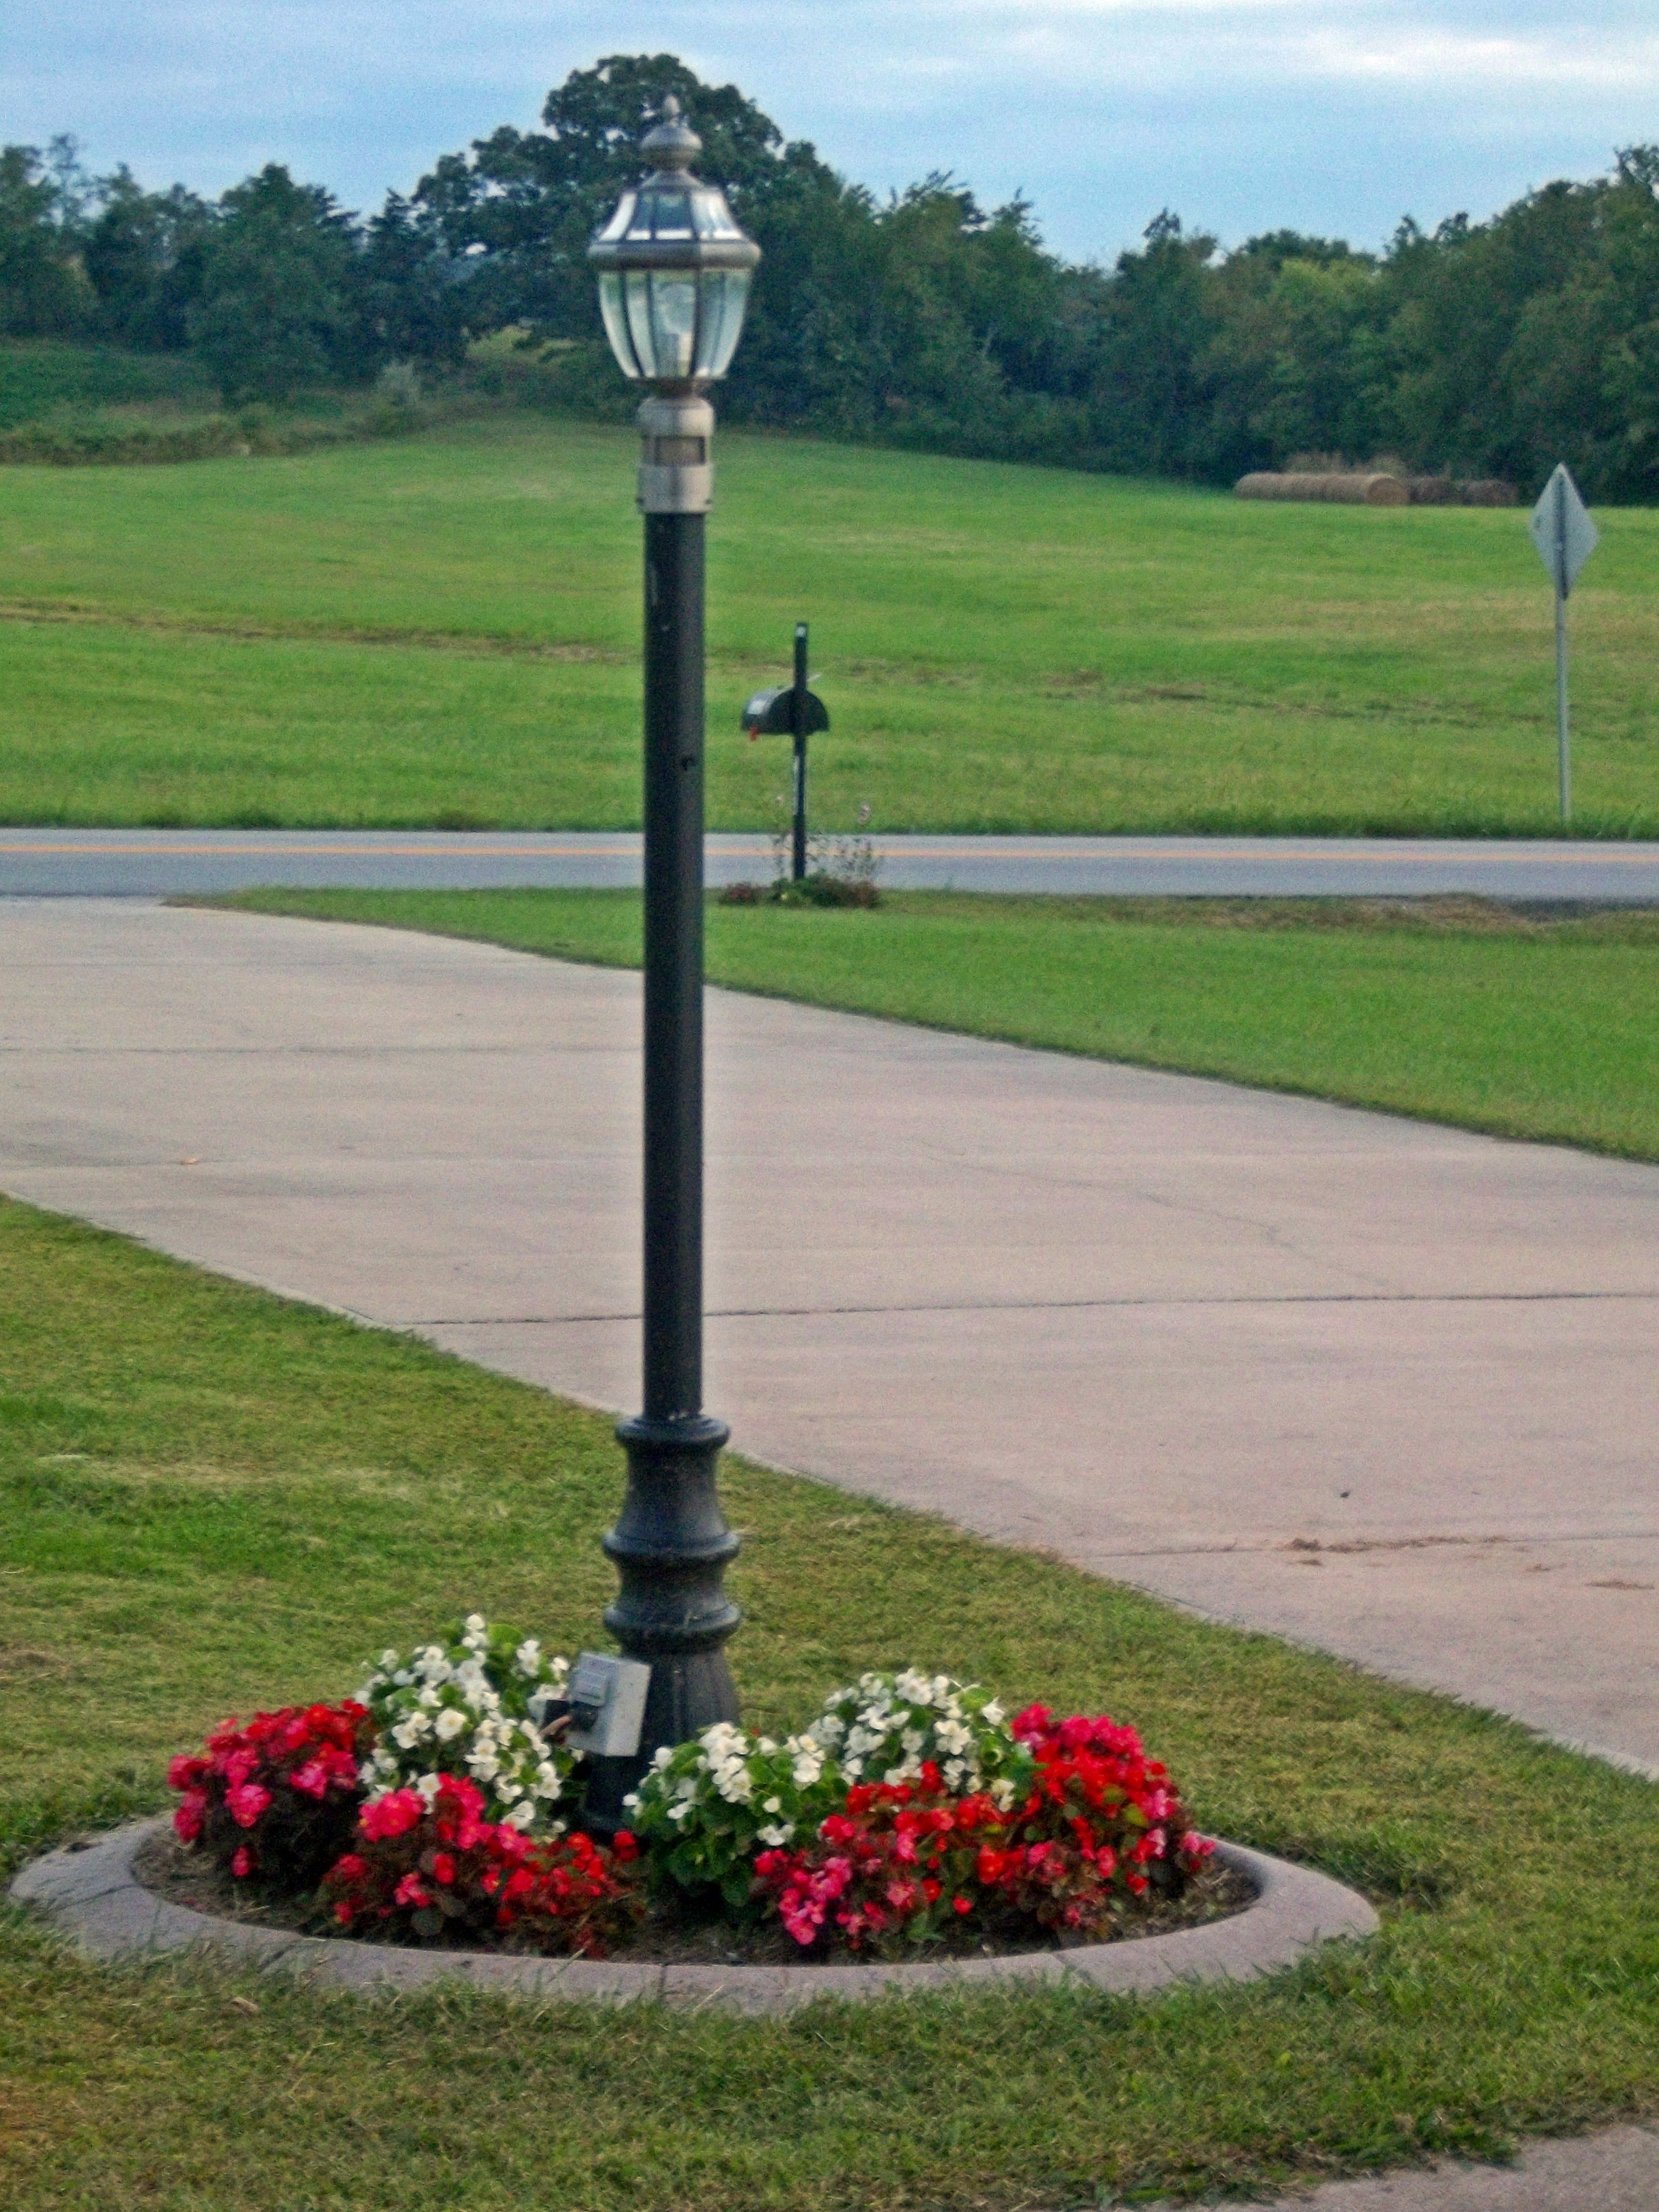 The Lamp Post Photo By Joy Fussell